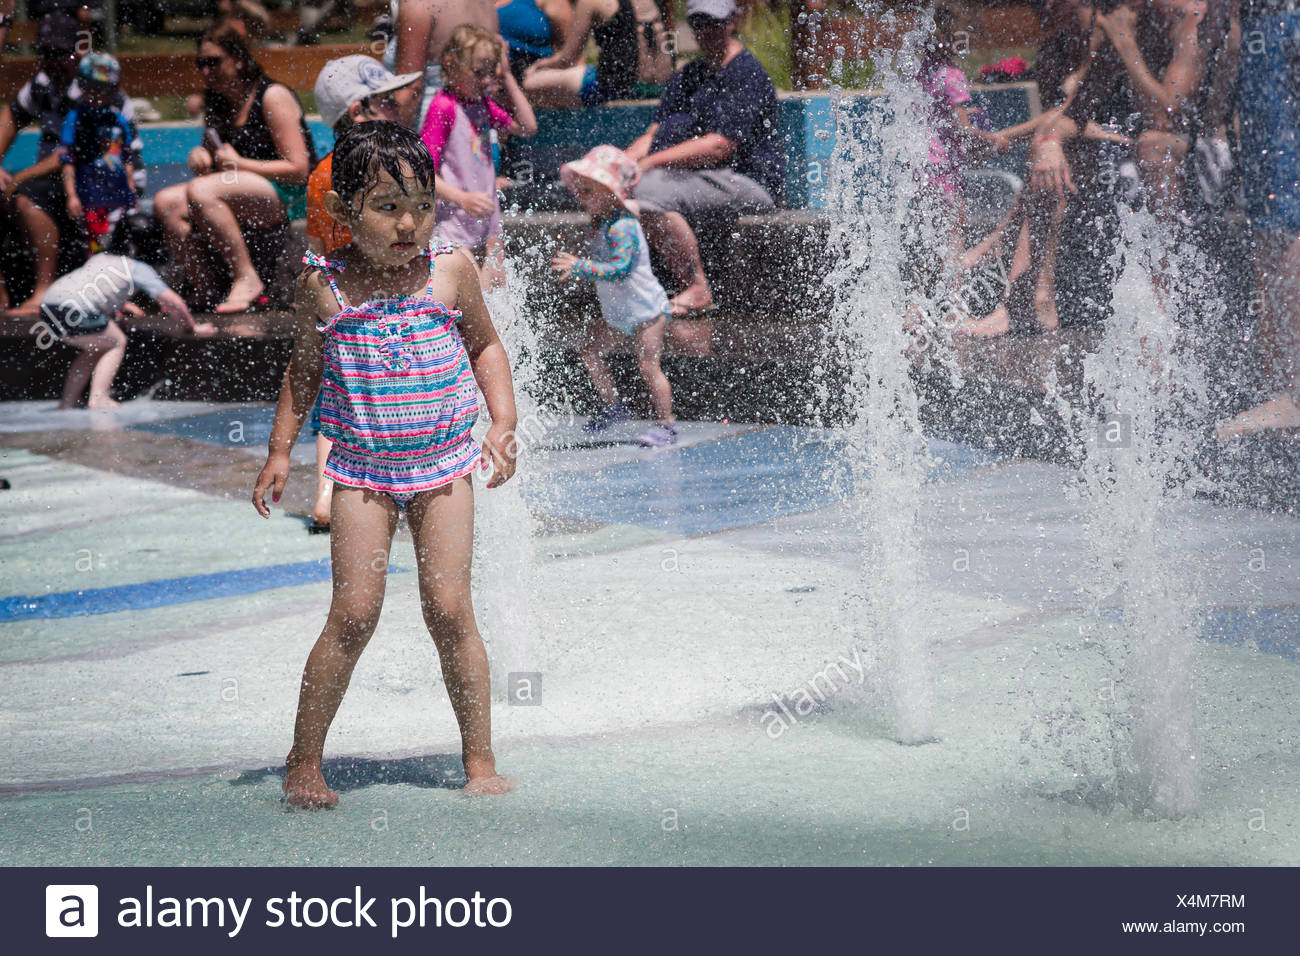 Barefoot girl approaching fountain at summer, people in background - Stock Image